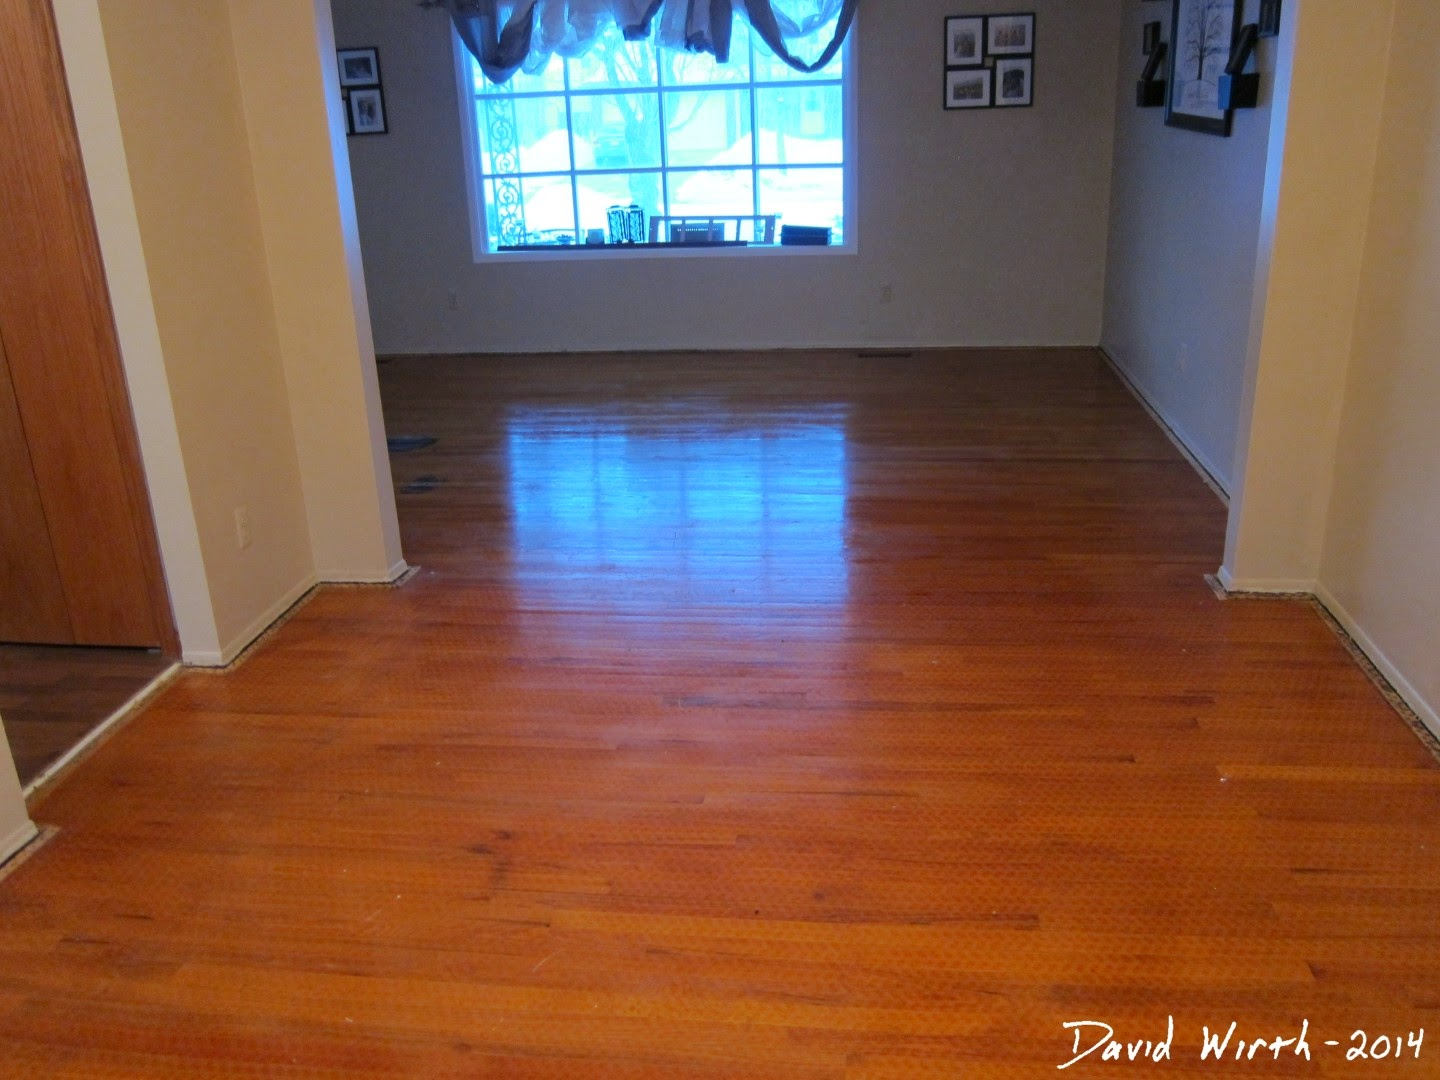 how to get the best deal on carpet from home depot lowe's